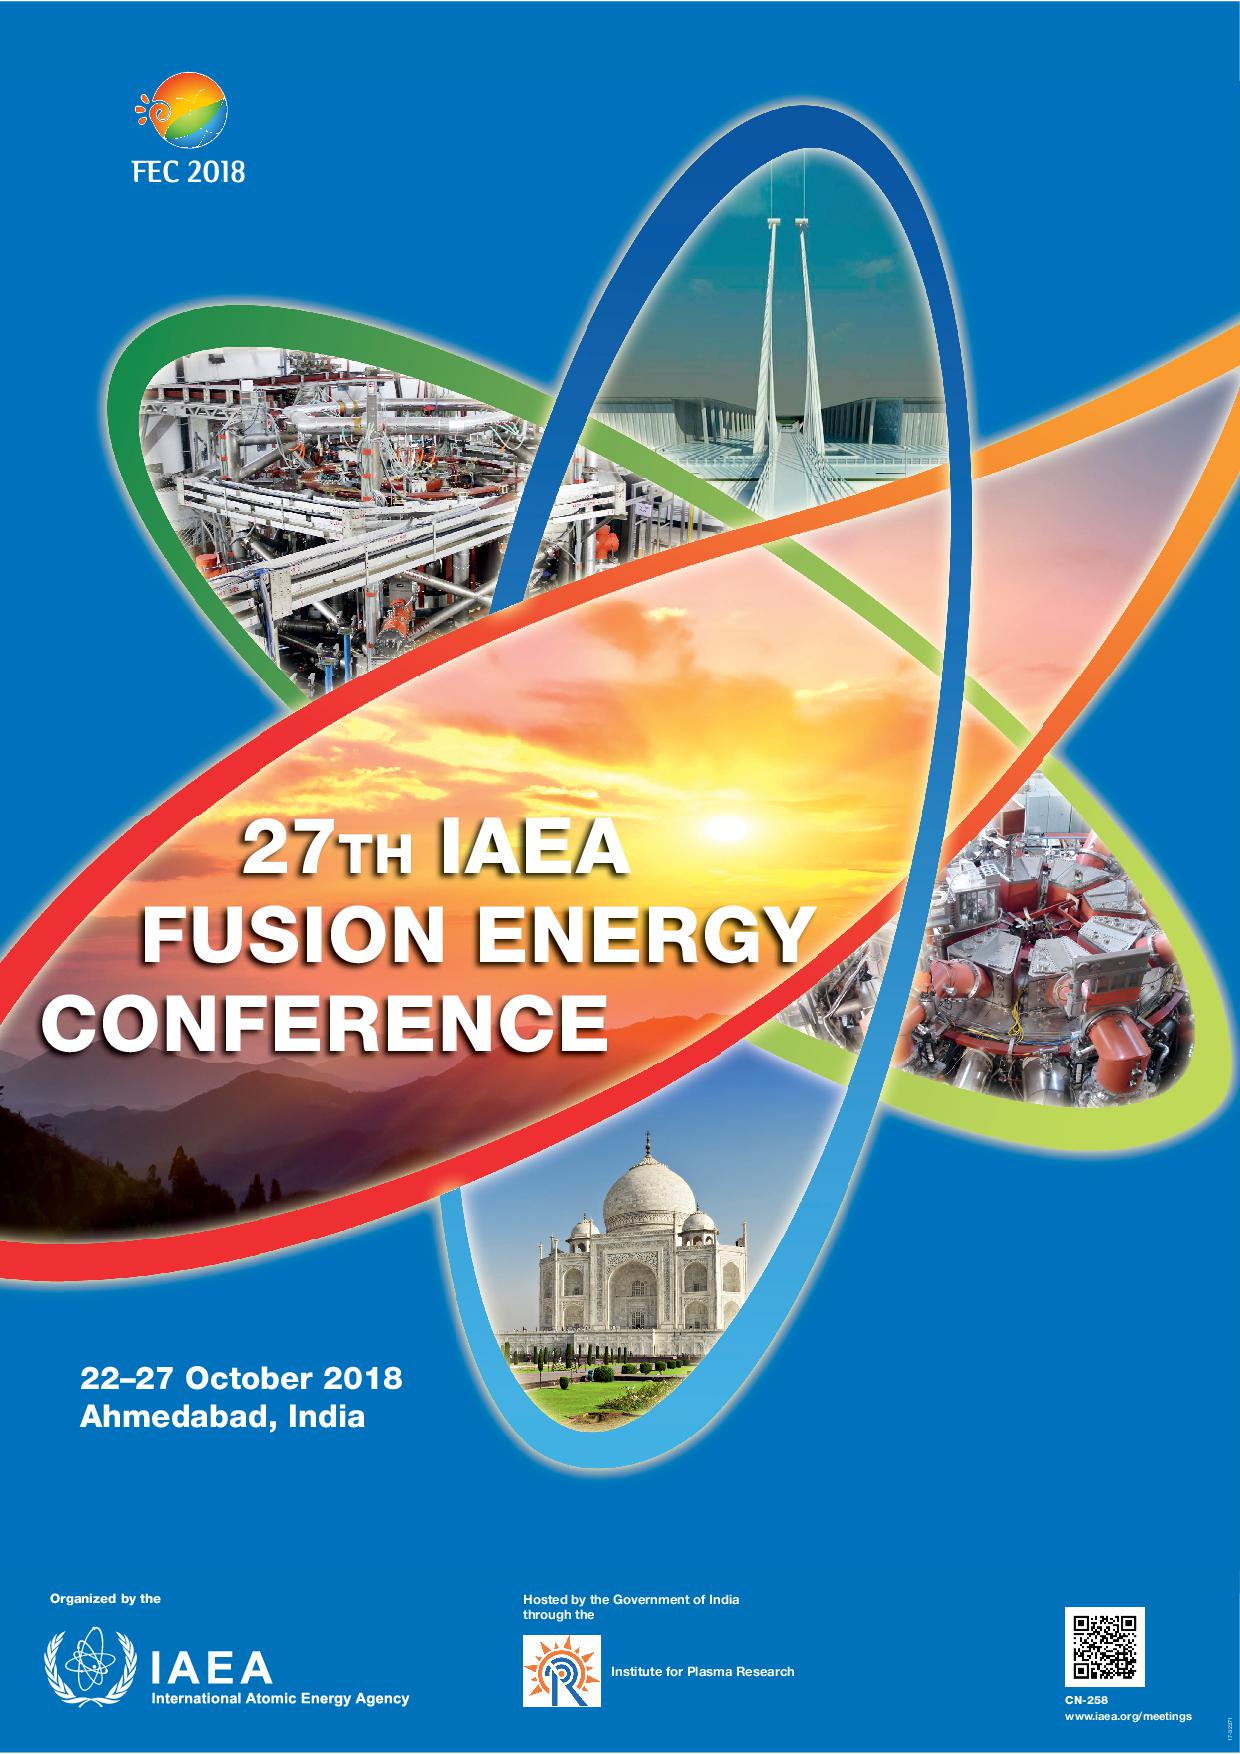 27th Iaea Fusion Energy Conference Cn 258 22 27 October 2018 Circuit Diagram Amplifier Circuits Audio Yonghua Mo Reviews Status Of Research And Technology To Power